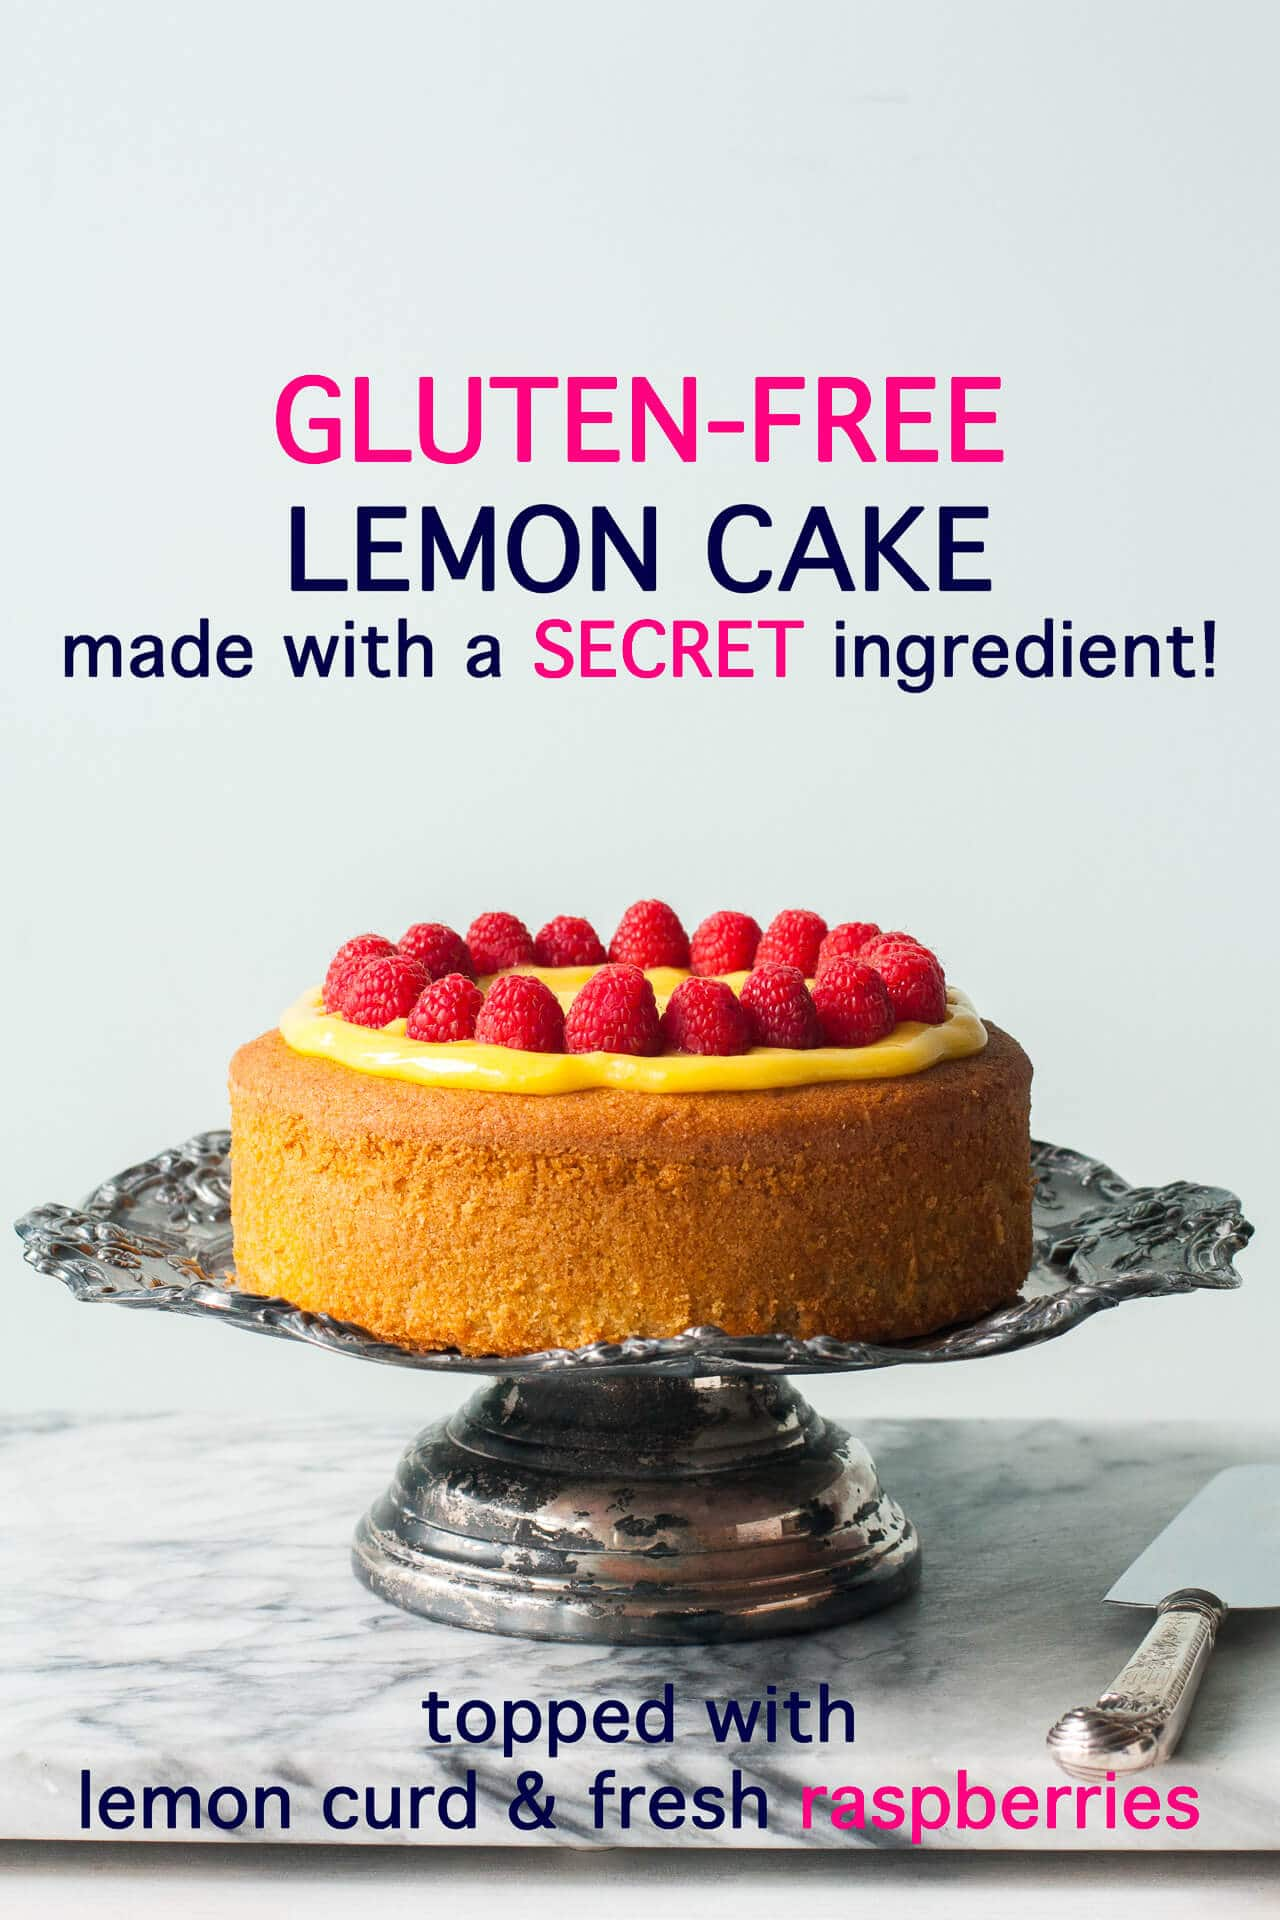 Single layer gluten-free lemon cake topped with homemade lemon curd and fresh raspberries served on a tarnished antique cake stand